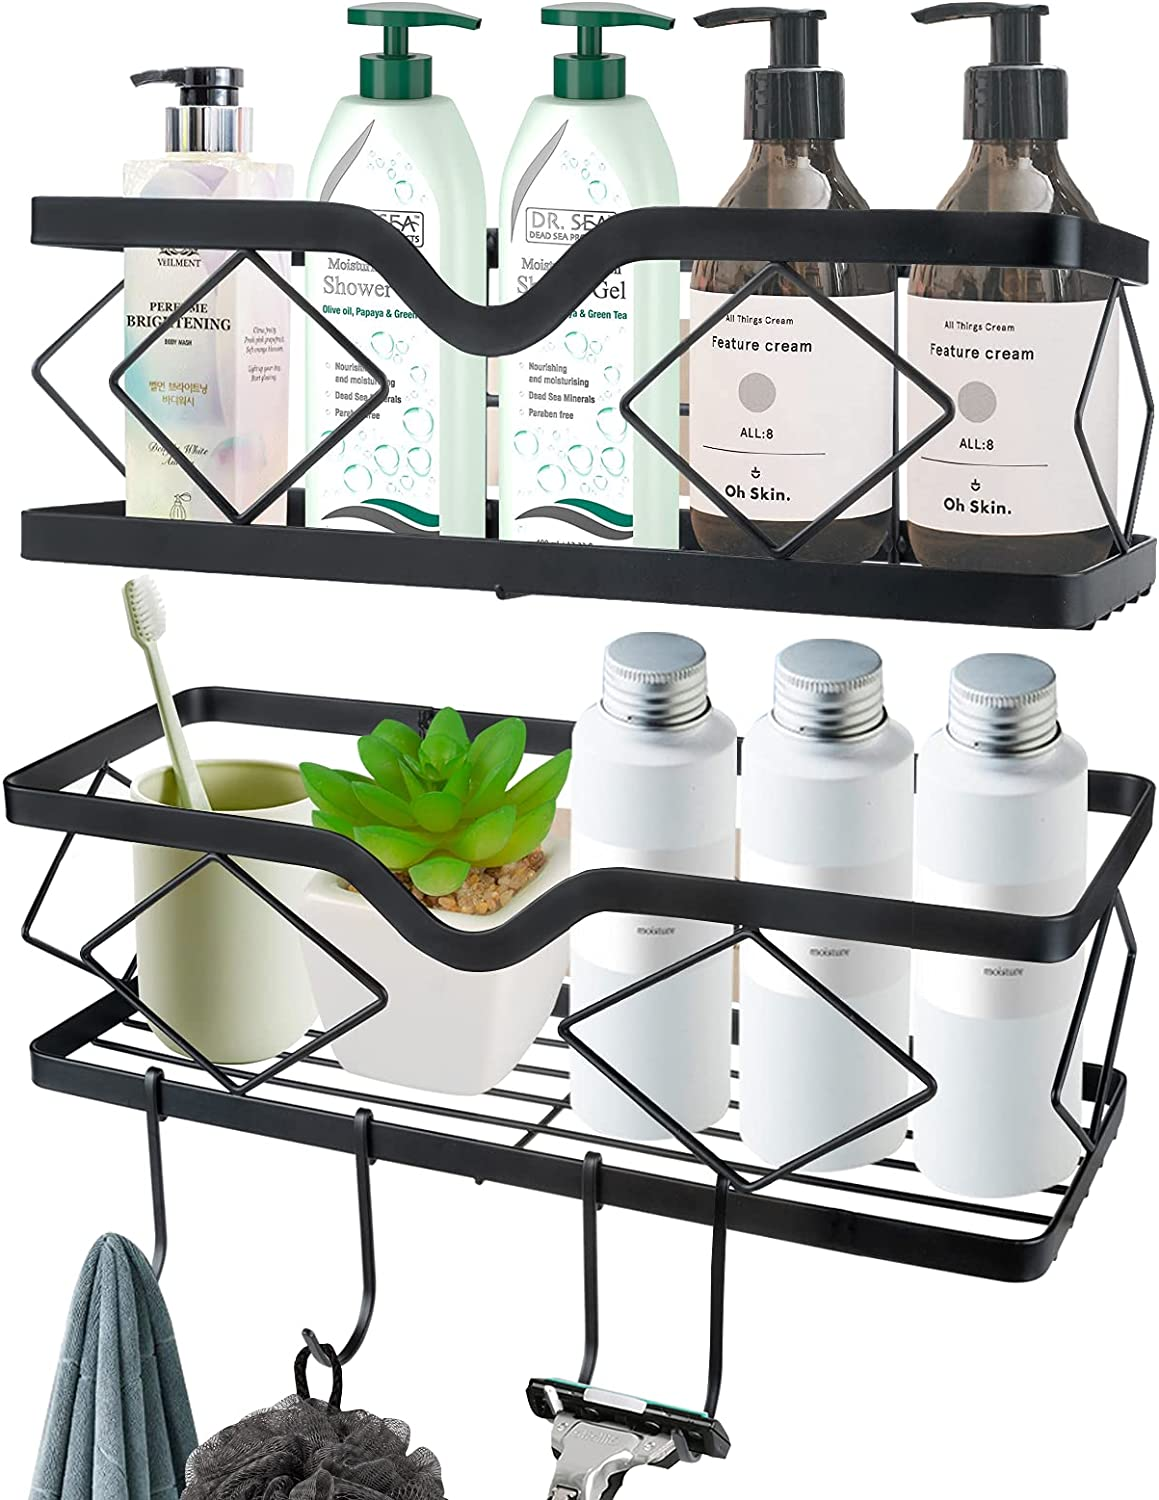 Kadolina Adhesive Shower Caddy Bathroom Pack Shelf Challenge the lowest price Wal 2 Popular shop is the lowest price challenge